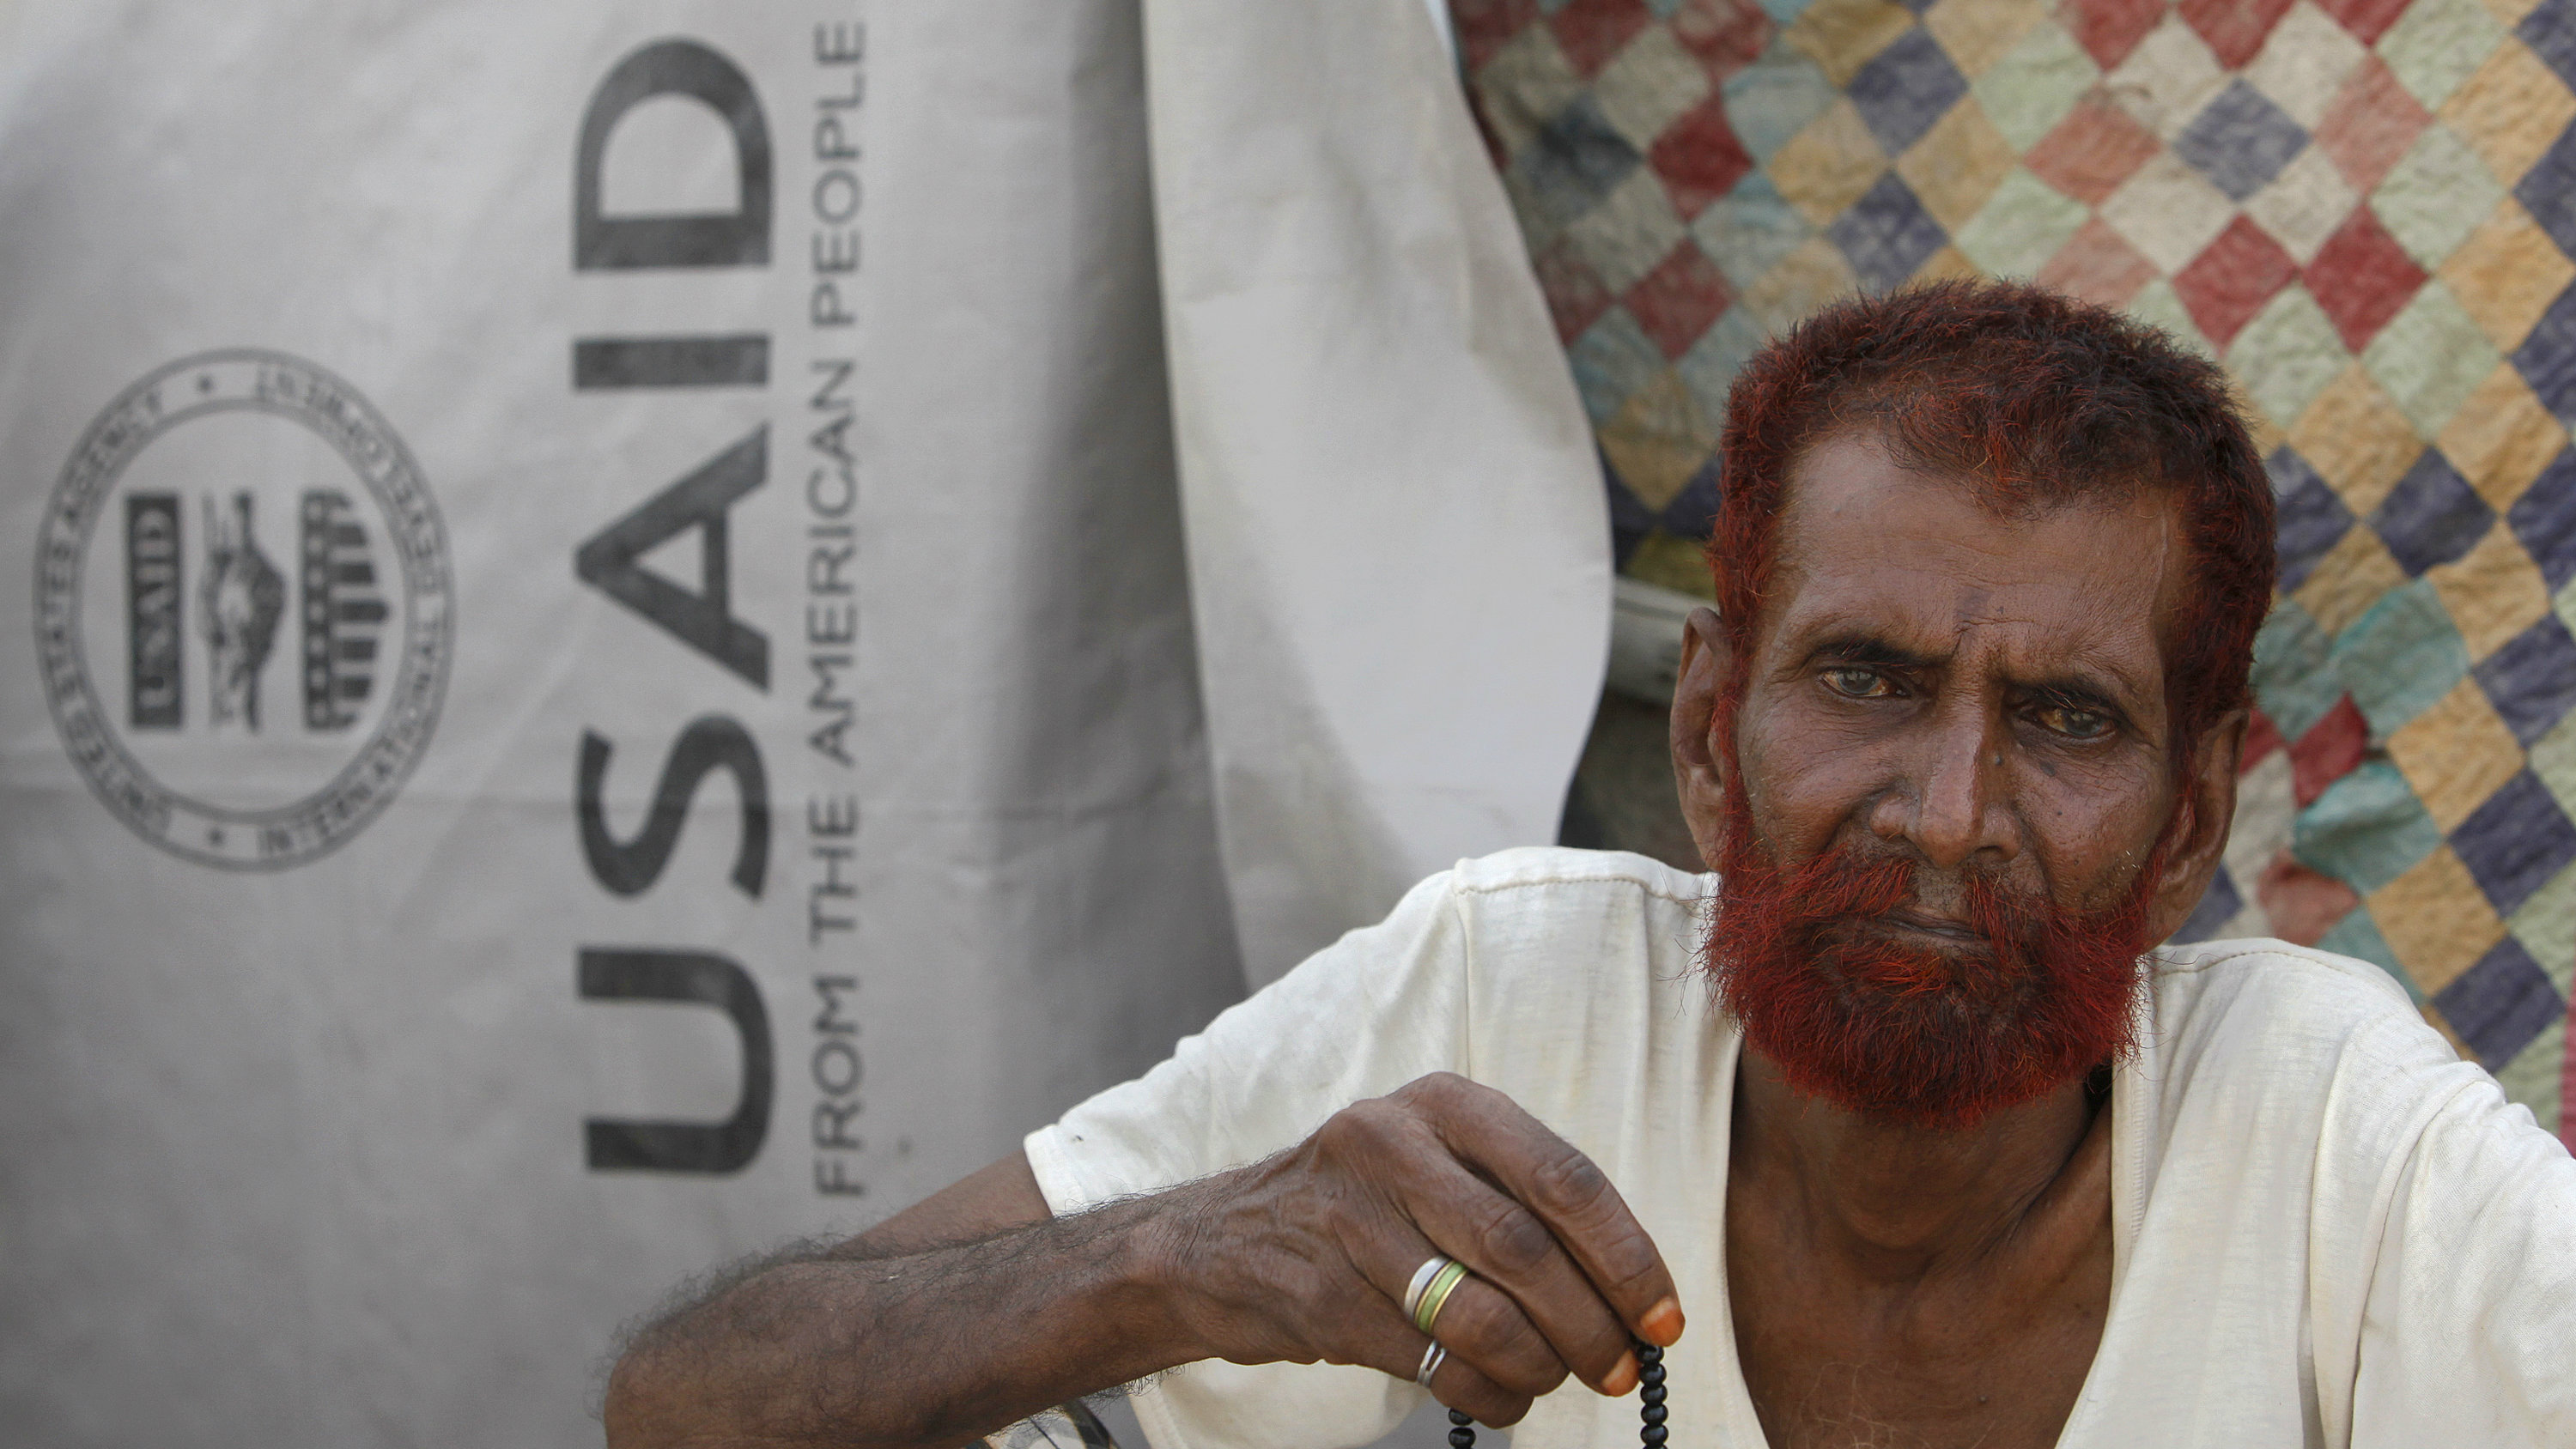 Flood victim Haji Usman holds praying beads as he sits outside his makeshift tent covered by weather sheet donated by USAID while taking refuge on an embankment at Chandan Mori village in Dadu, some 320 kilometres (199 miles) north of Karachi September 14, 2010. REUTERS/Akhtar Soomro (PAKISTAN - Tags: DISASTER ENVIRONMENT)